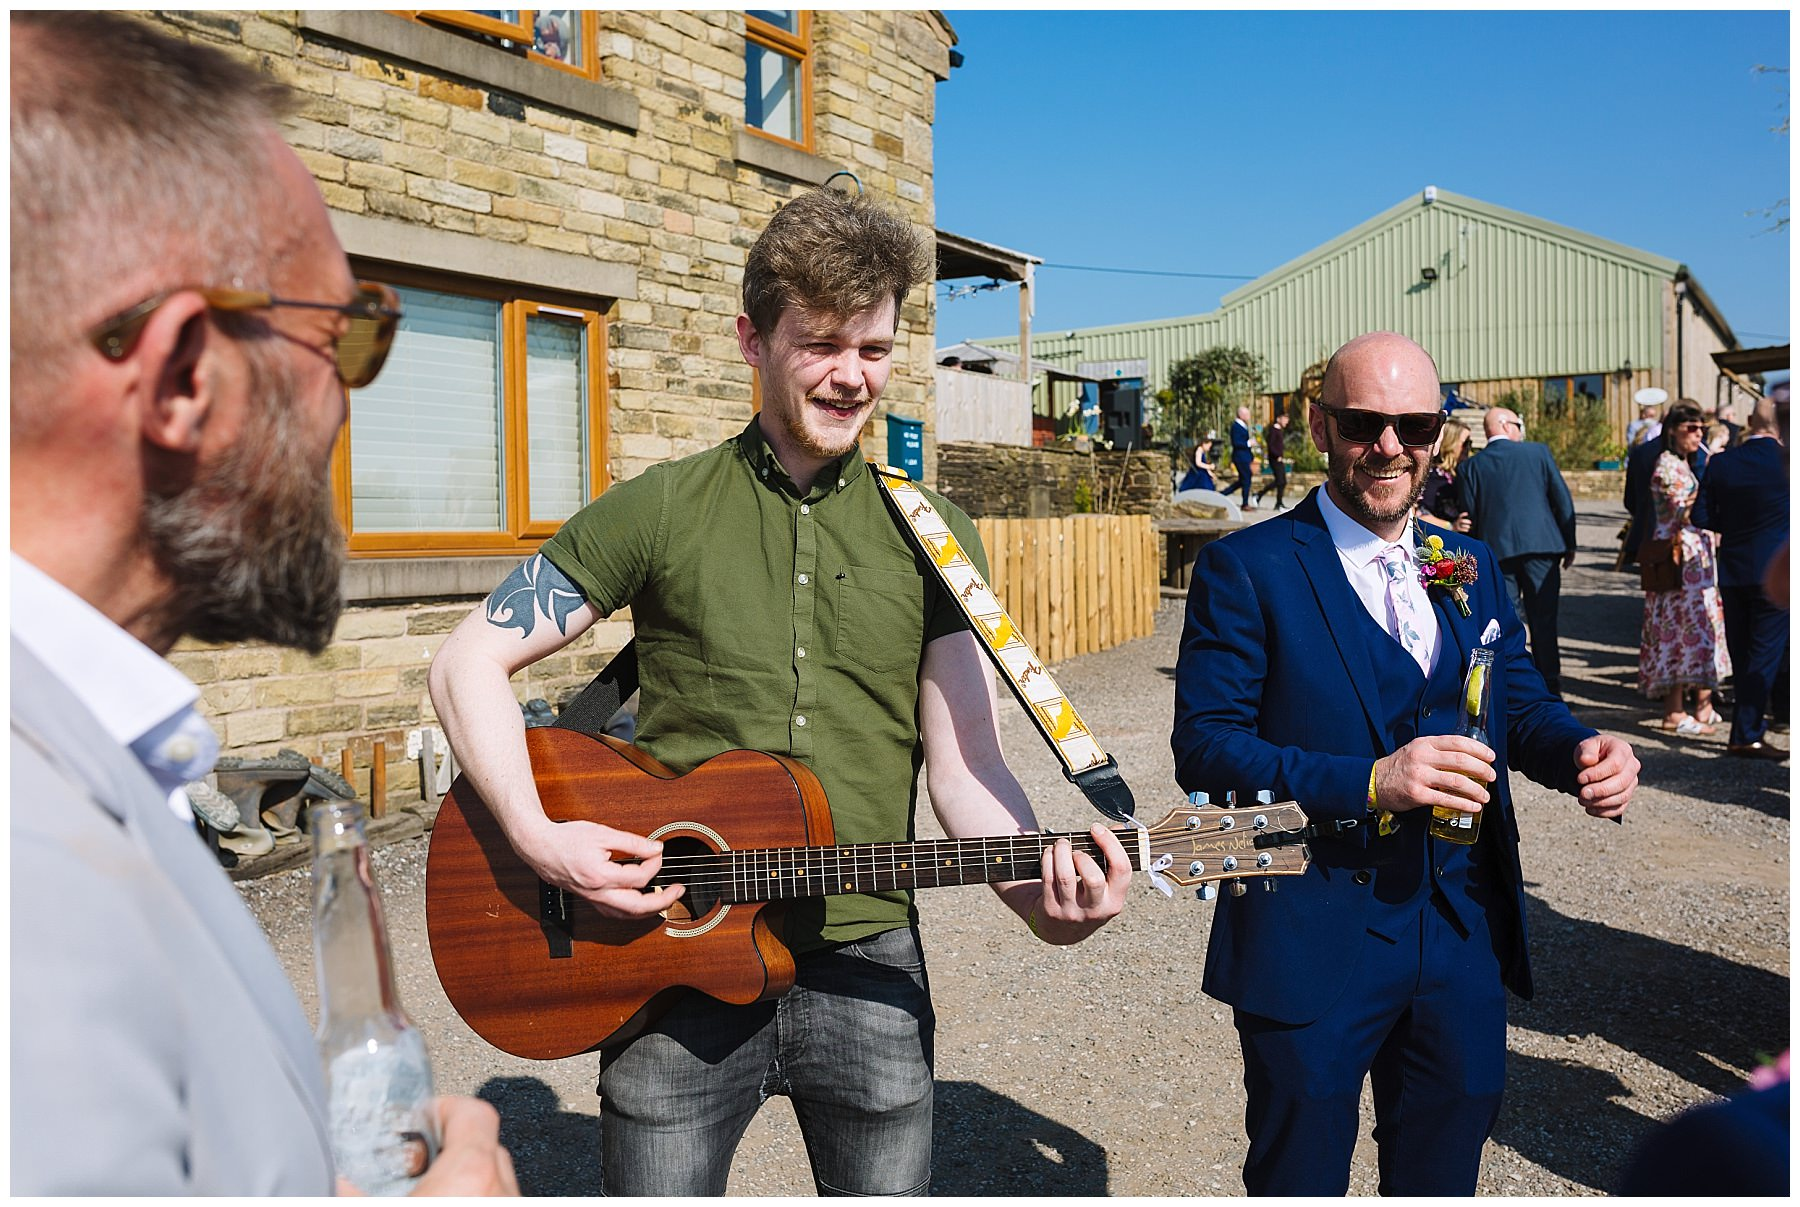 Hit The Dance Floor entertain guests during drinks reception at the wellbeing farm